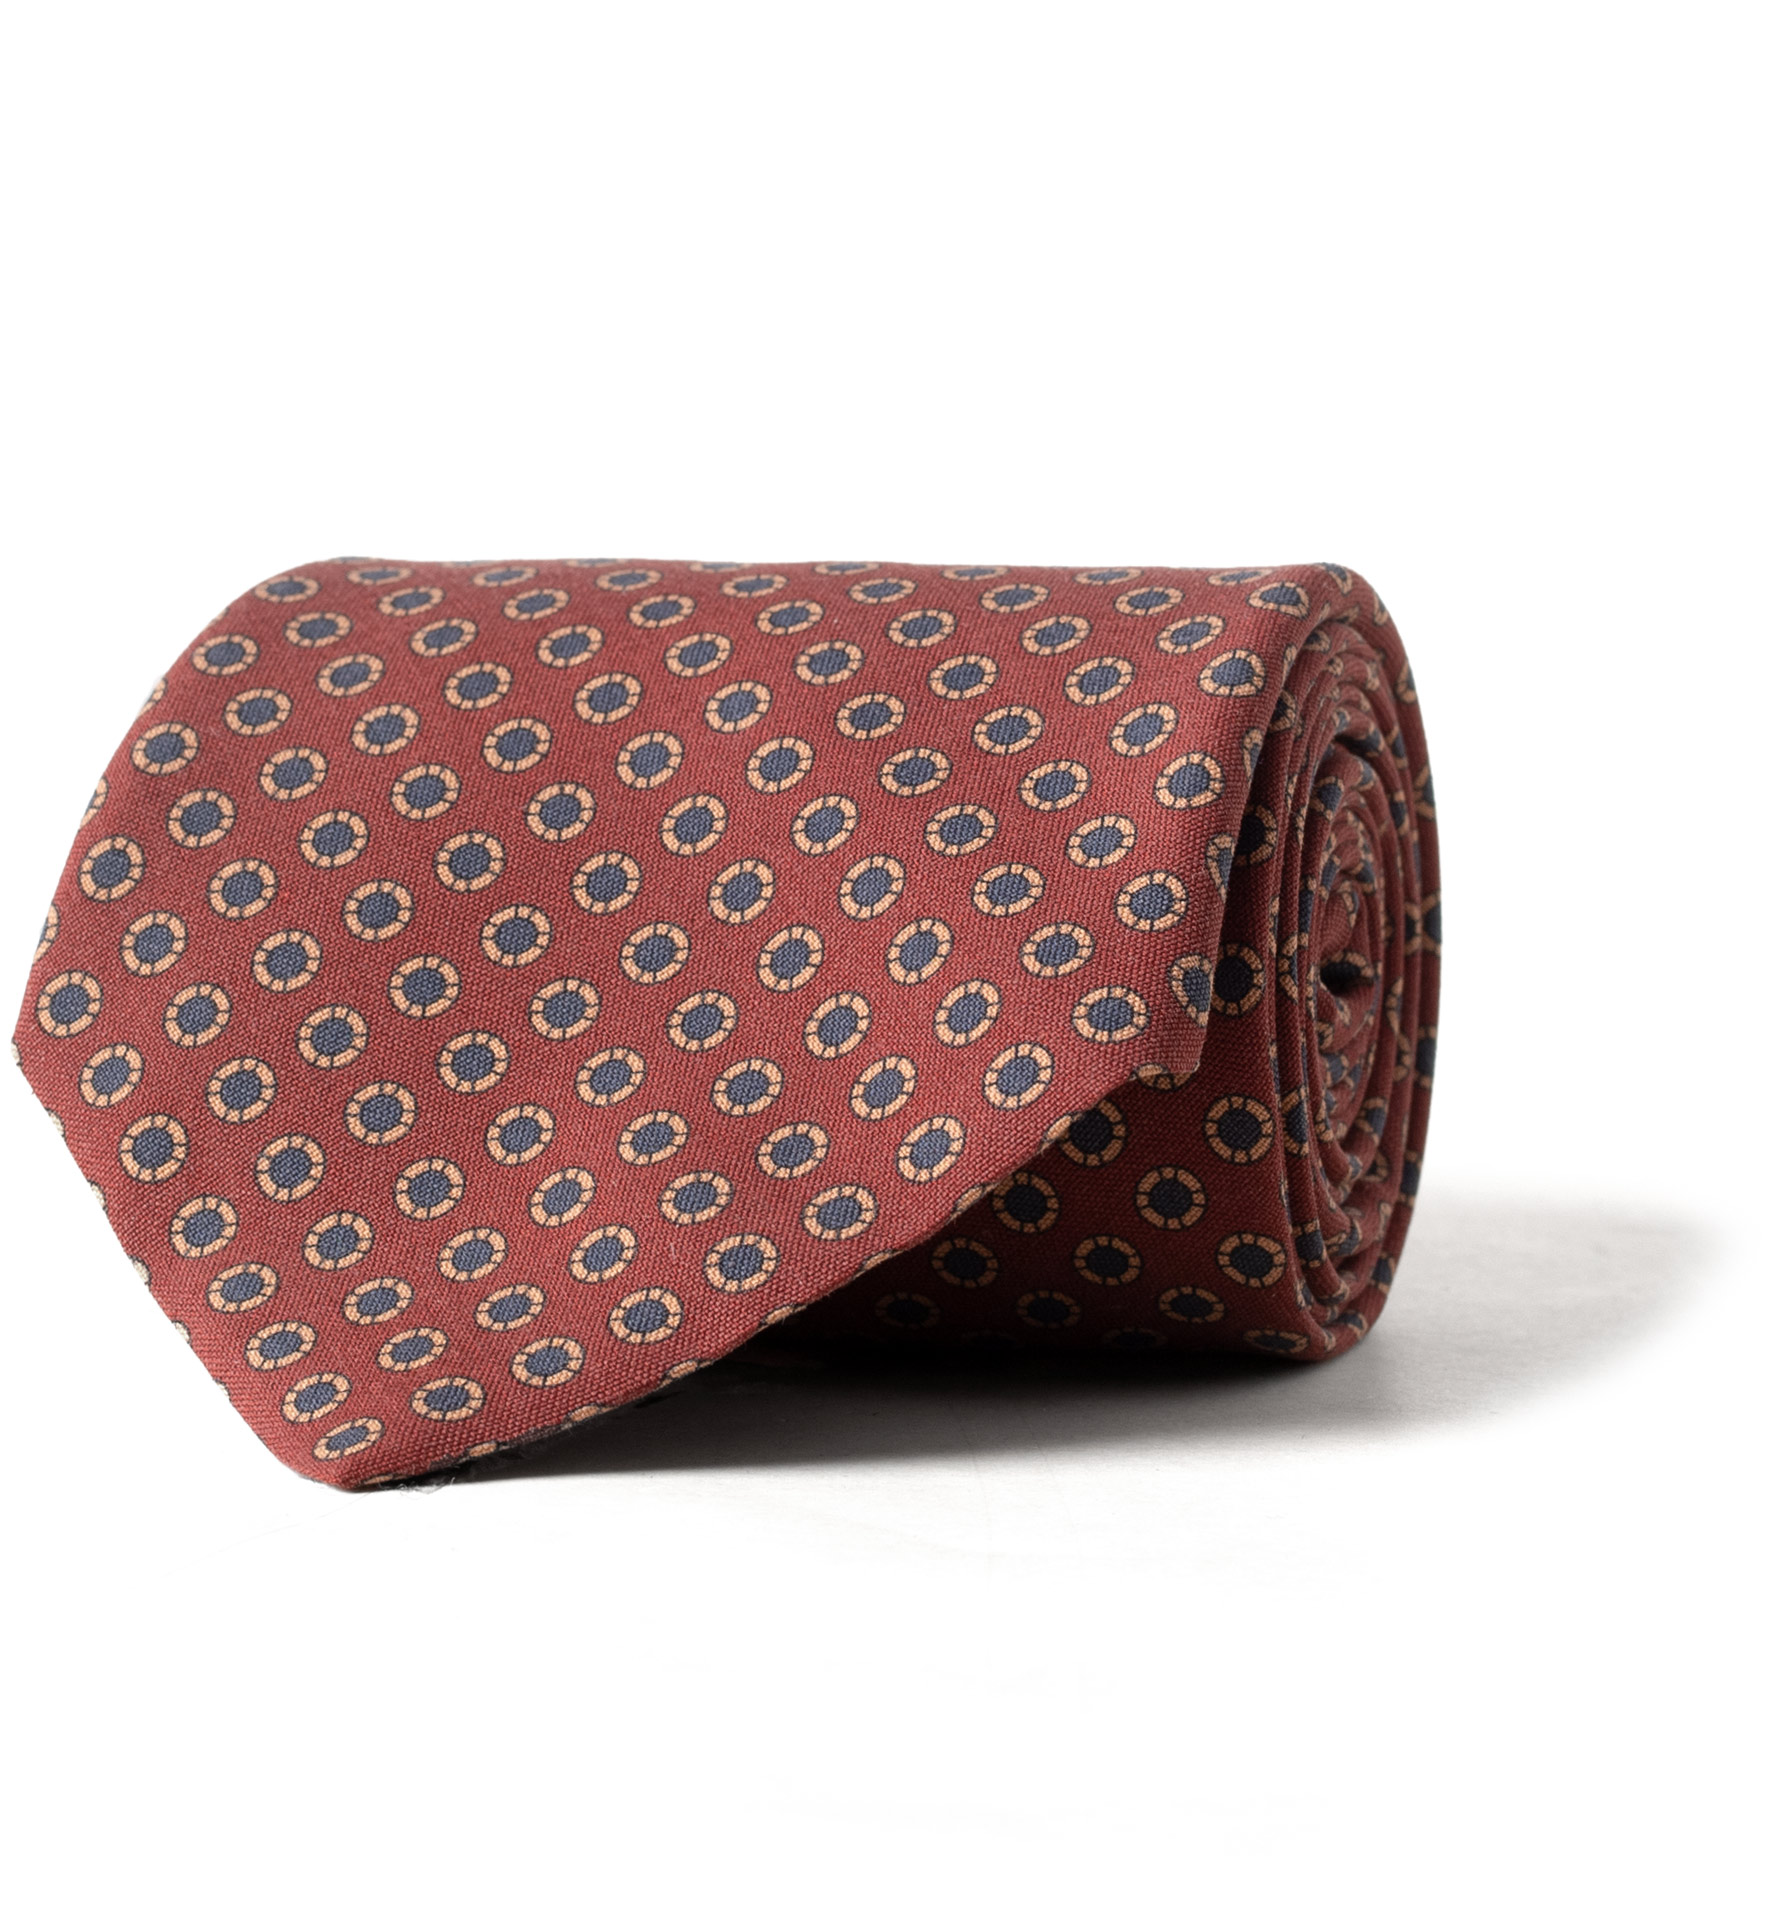 Zoom Image of Brick Red Small Circle Print Silk Tie